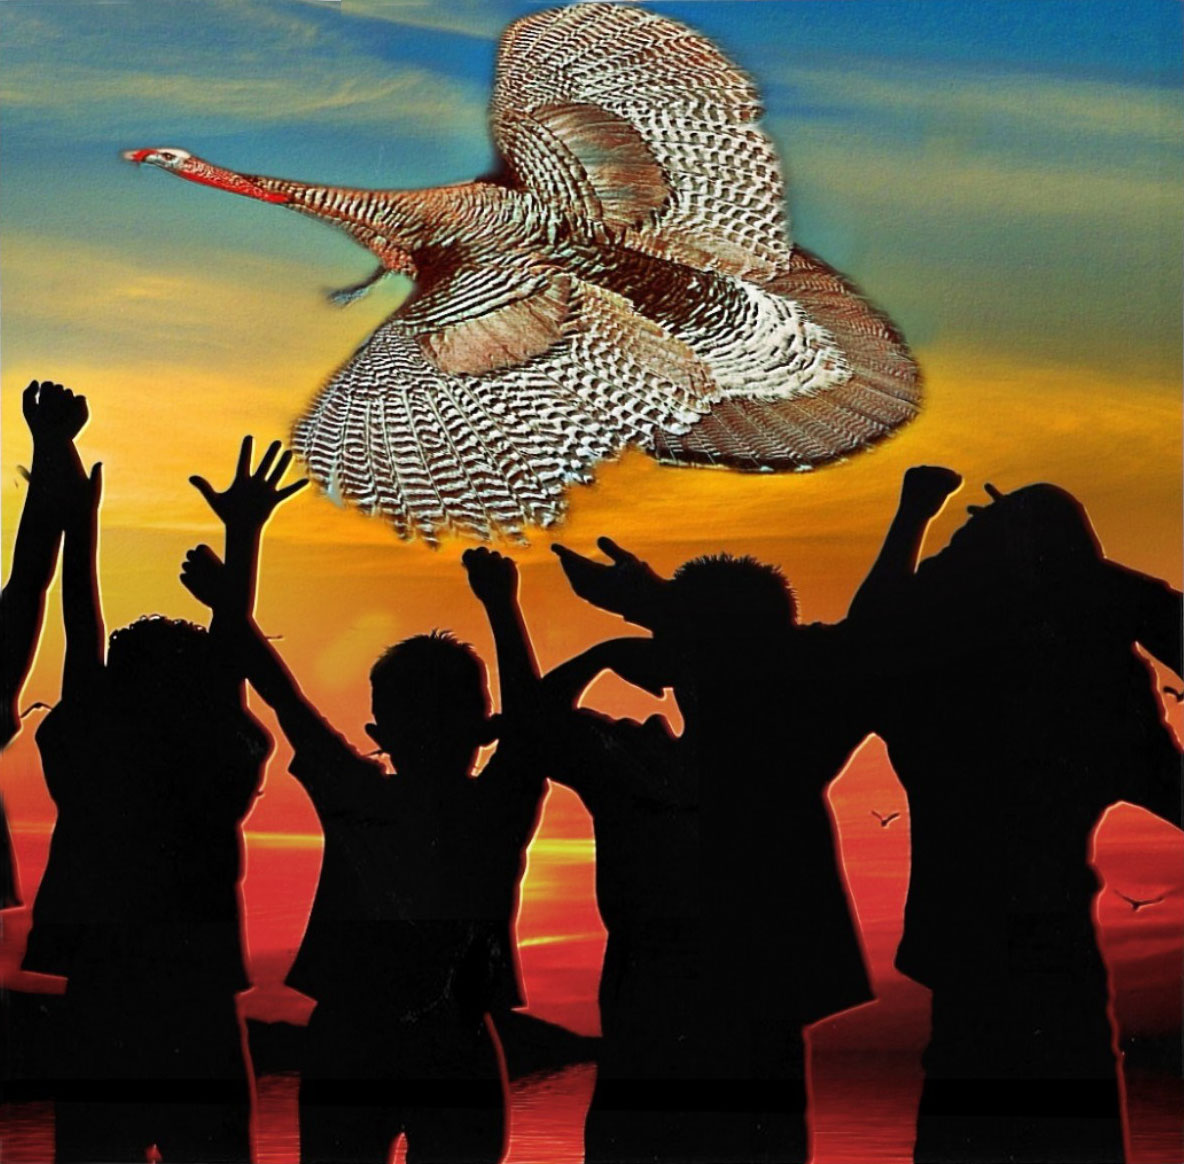 Collage of children with outstretched arms and turkey with wings extended in the sunset